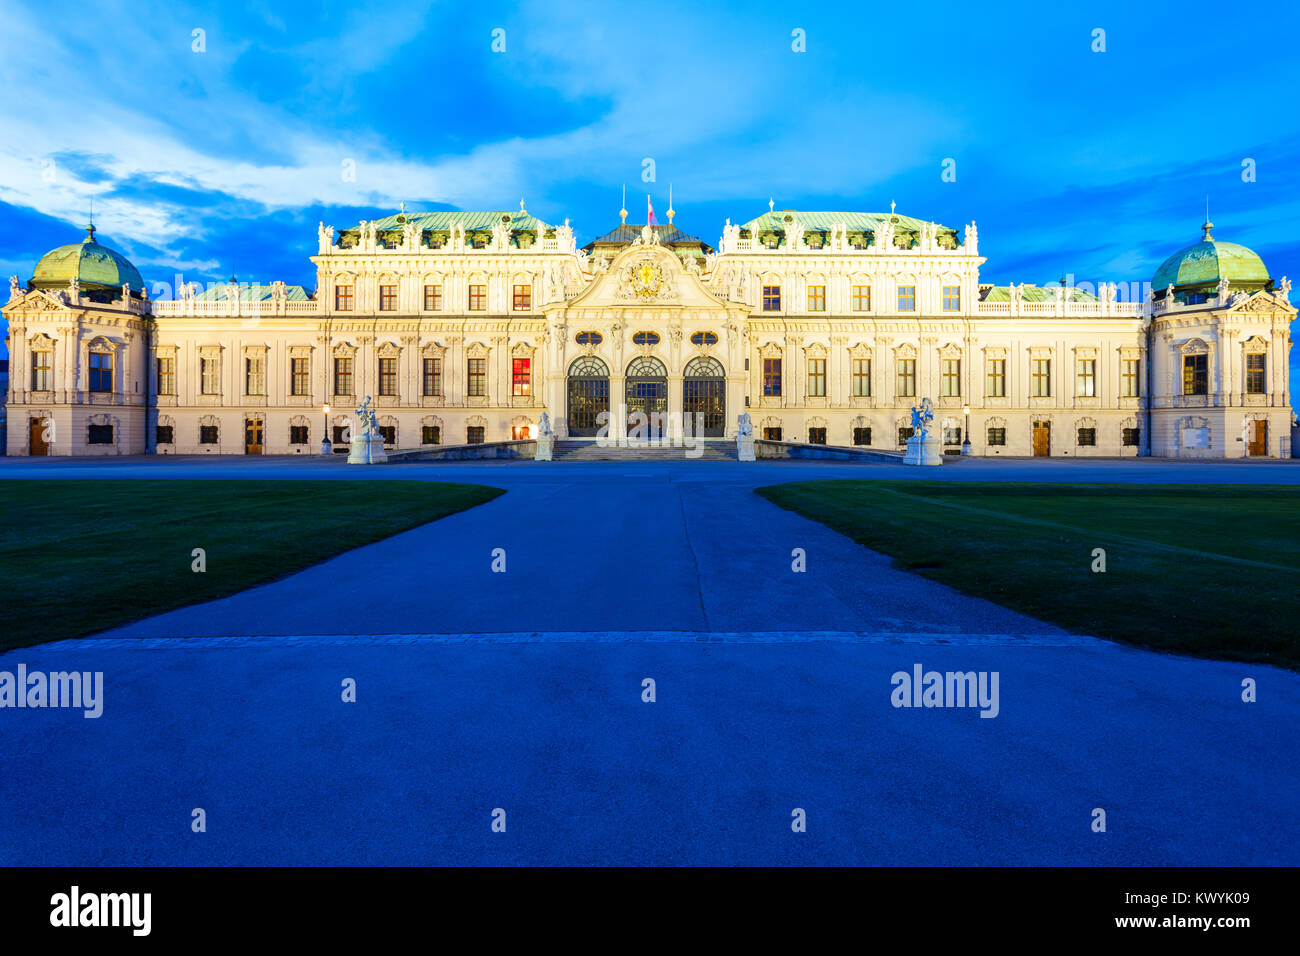 The Belvedere Palace is a historic building complex in Vienna, Austria at sunset. Belvedere was built as a summer - Stock Image